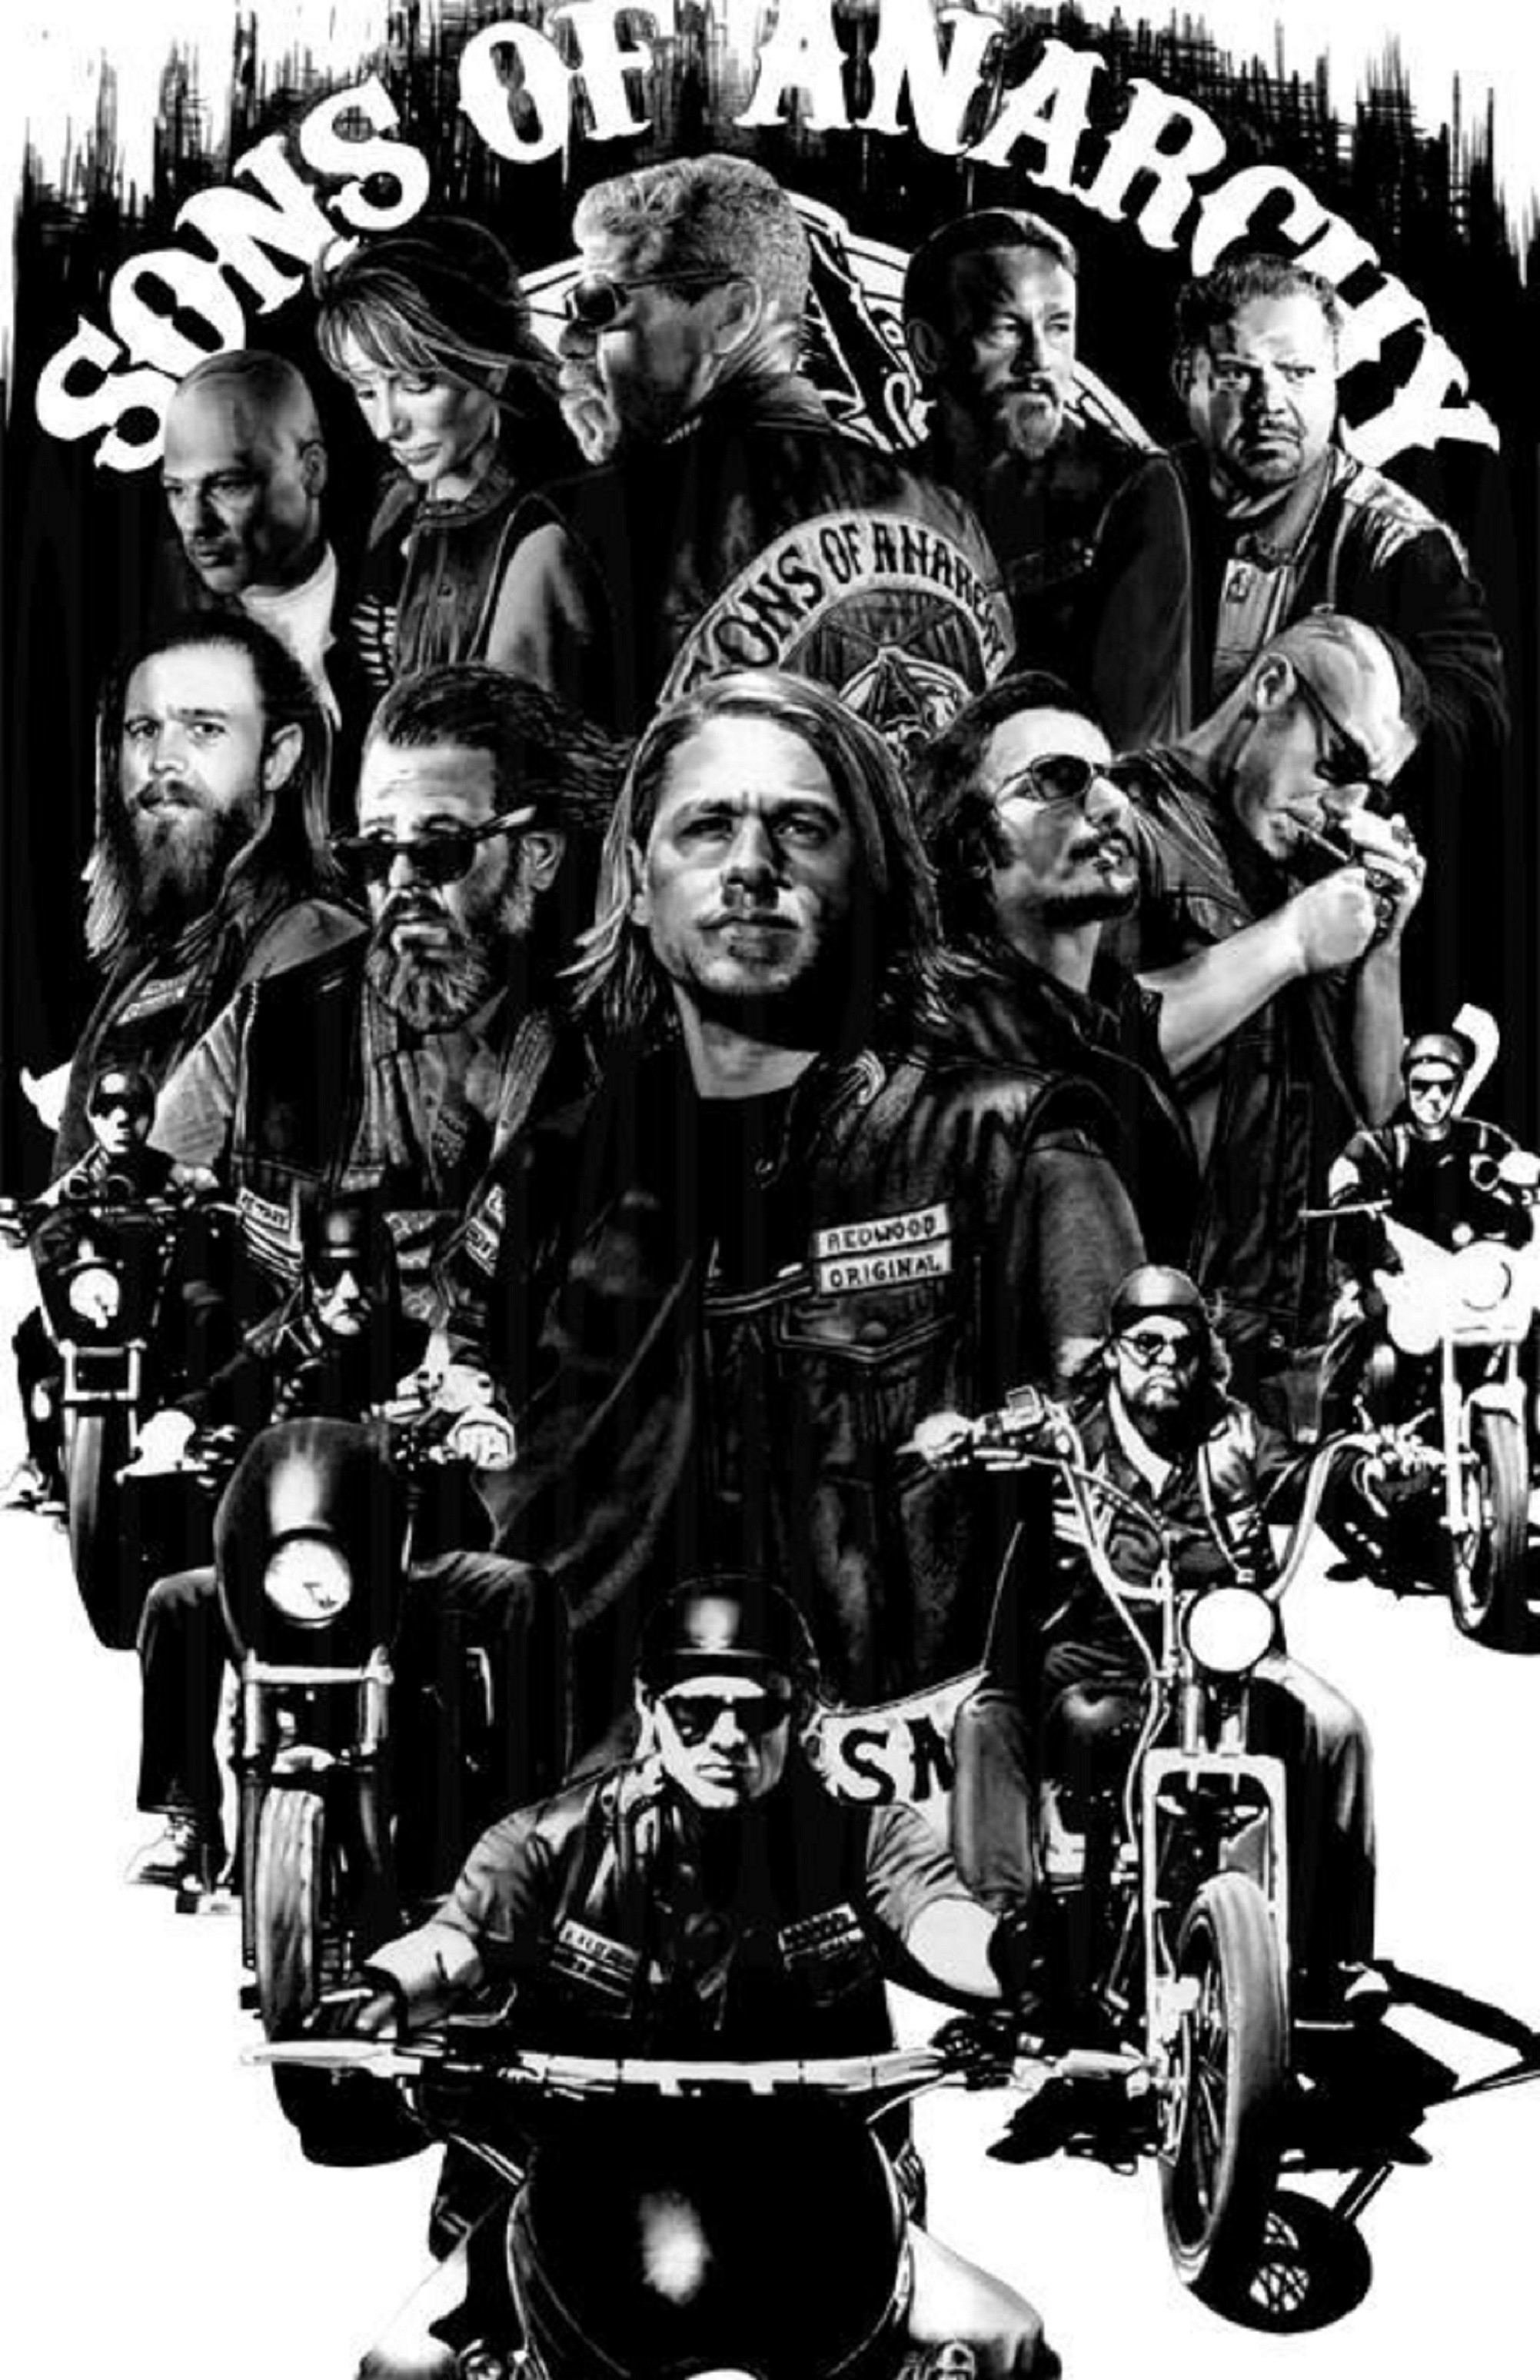 Explore Fan Poster, Sons Of Anarchy, and more!